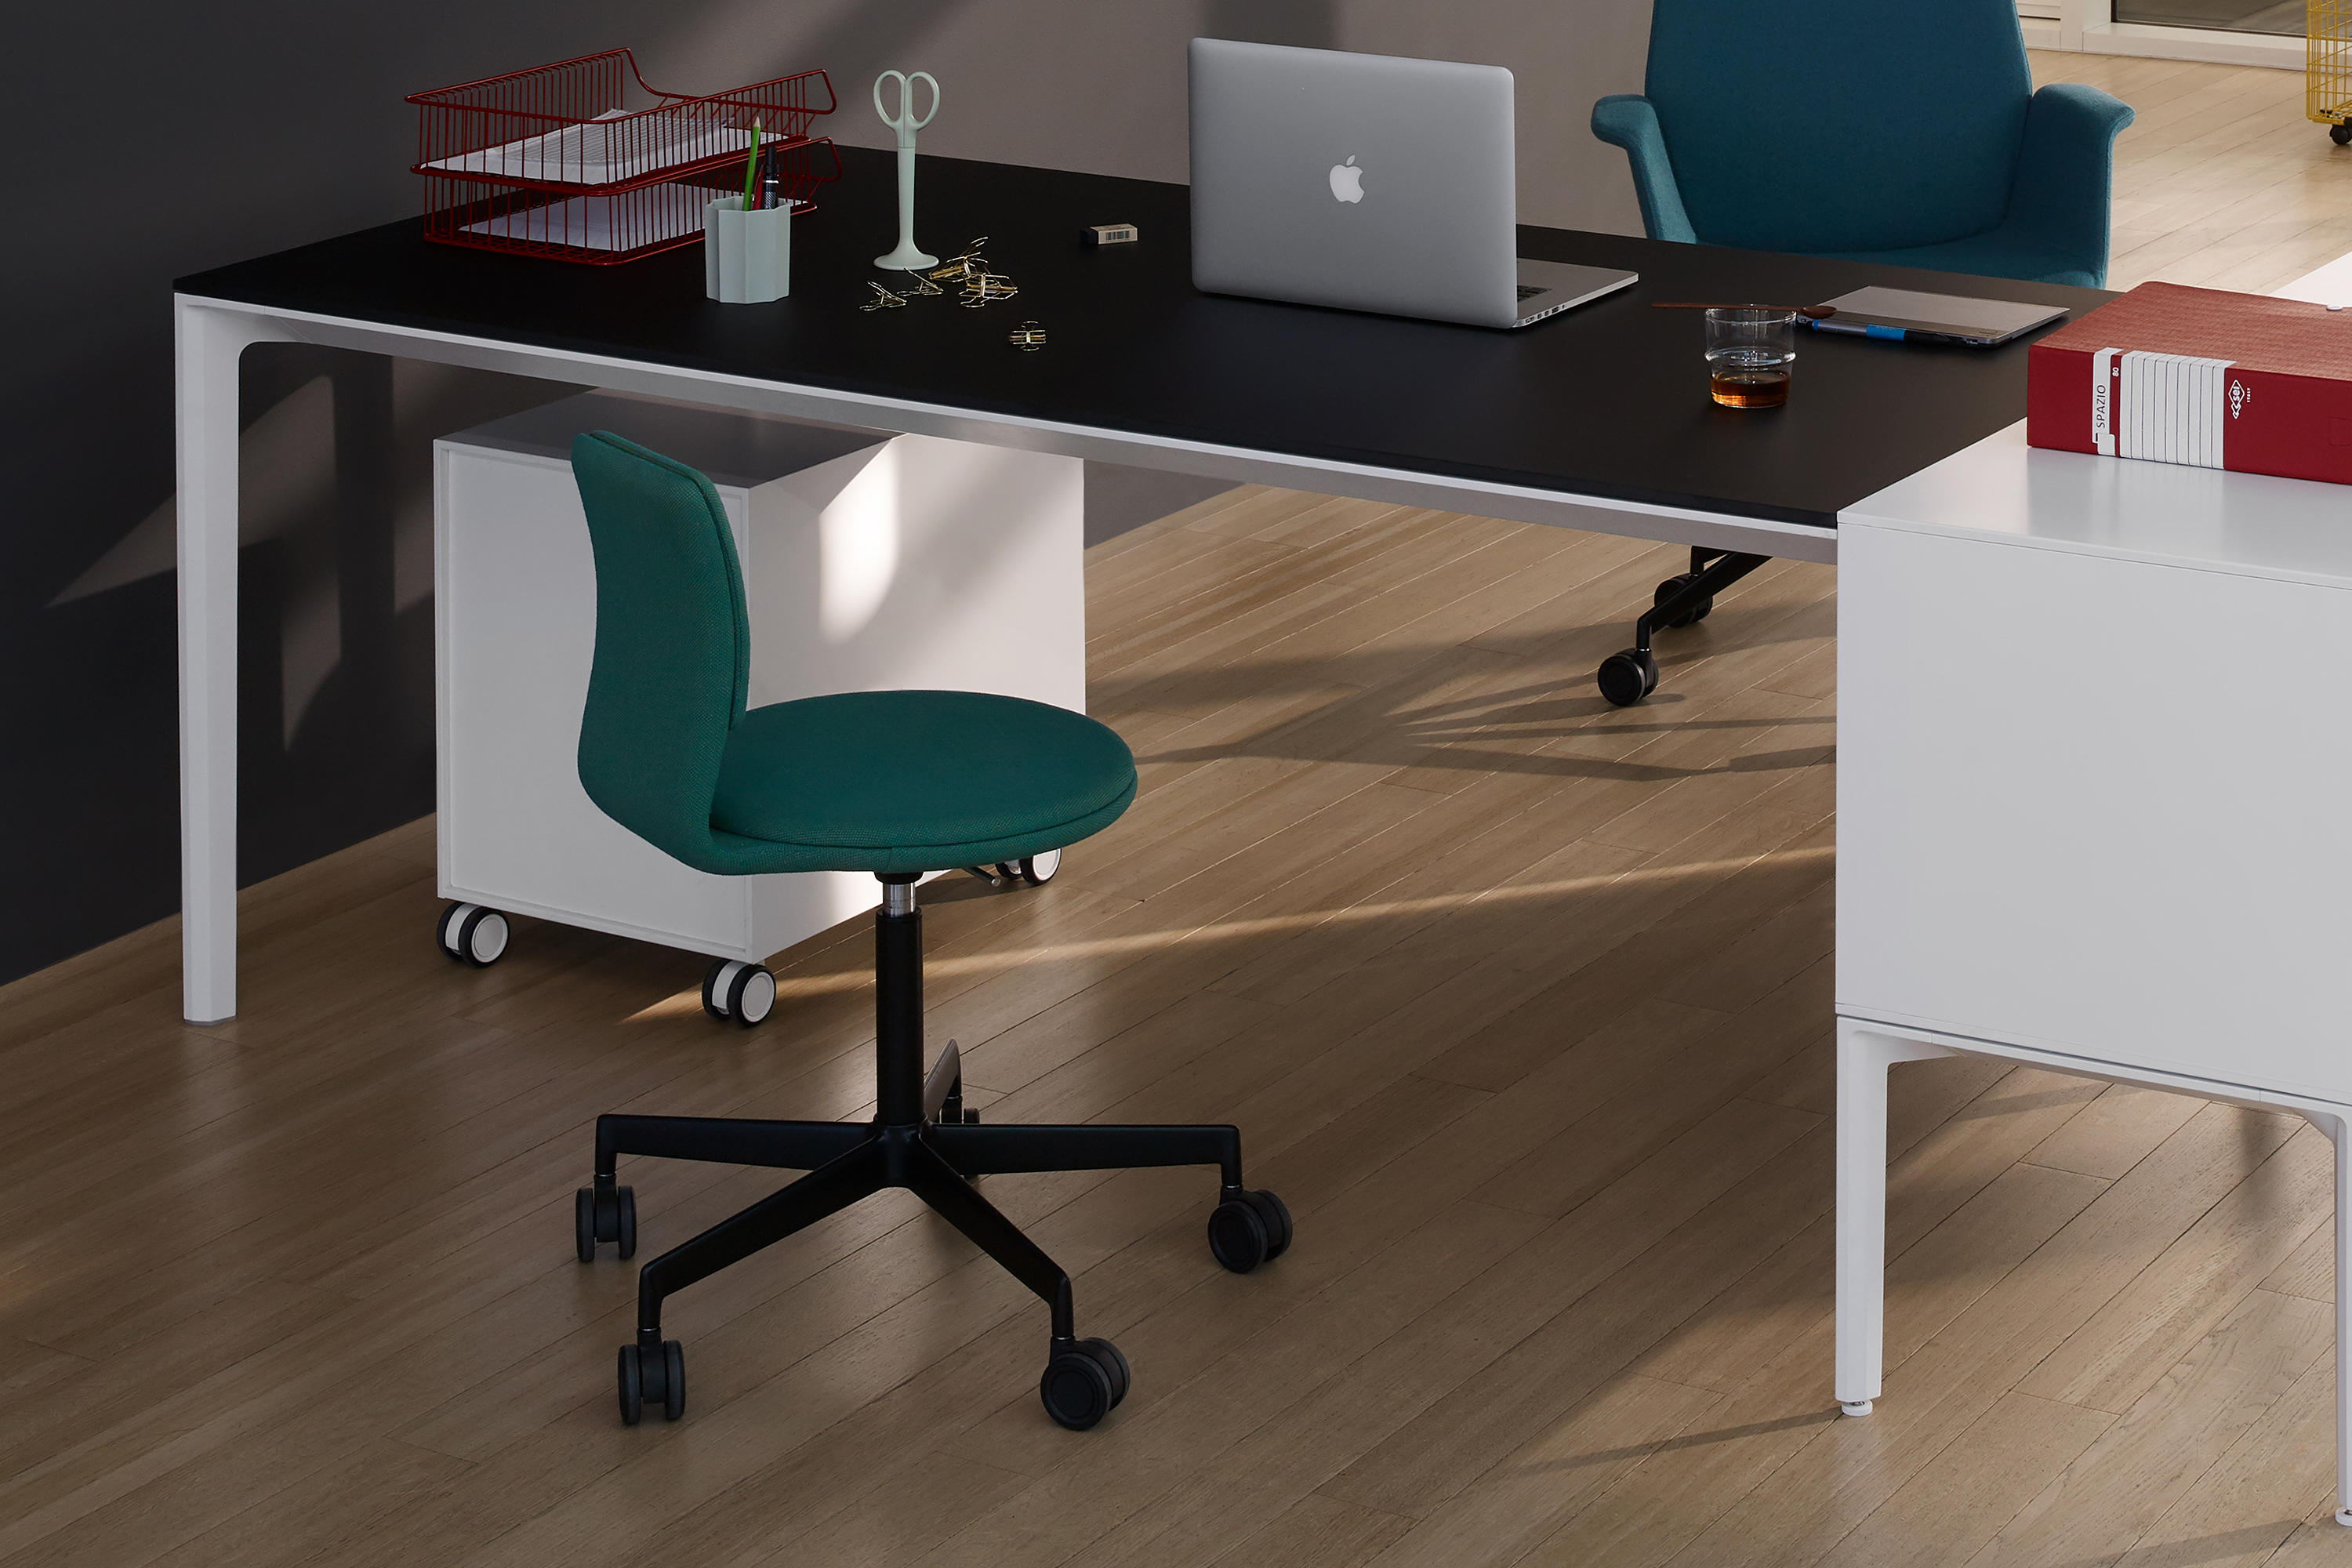 Spazio Italiano San Francisco lab stool - chairs from lapalma | architonic